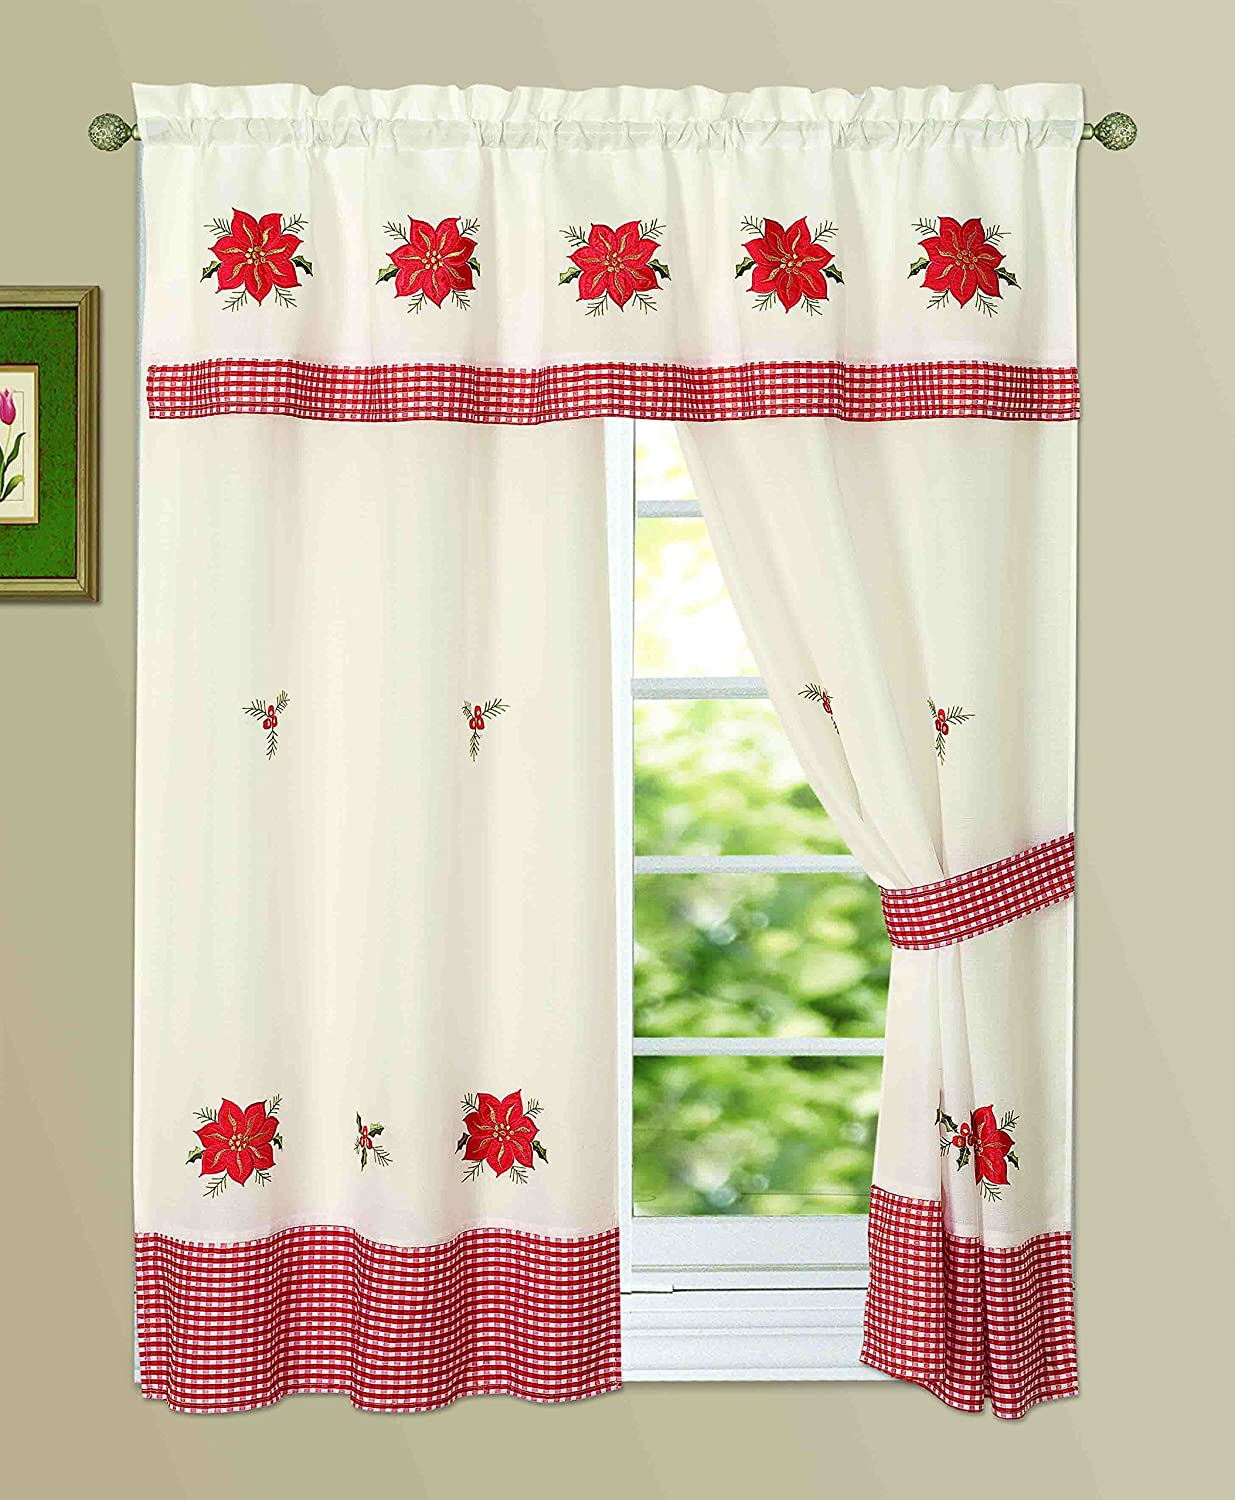 New 3pc Attached Christmas Holiday Design Embroidered Kitchen Curtain Set with 2 Tiebacks